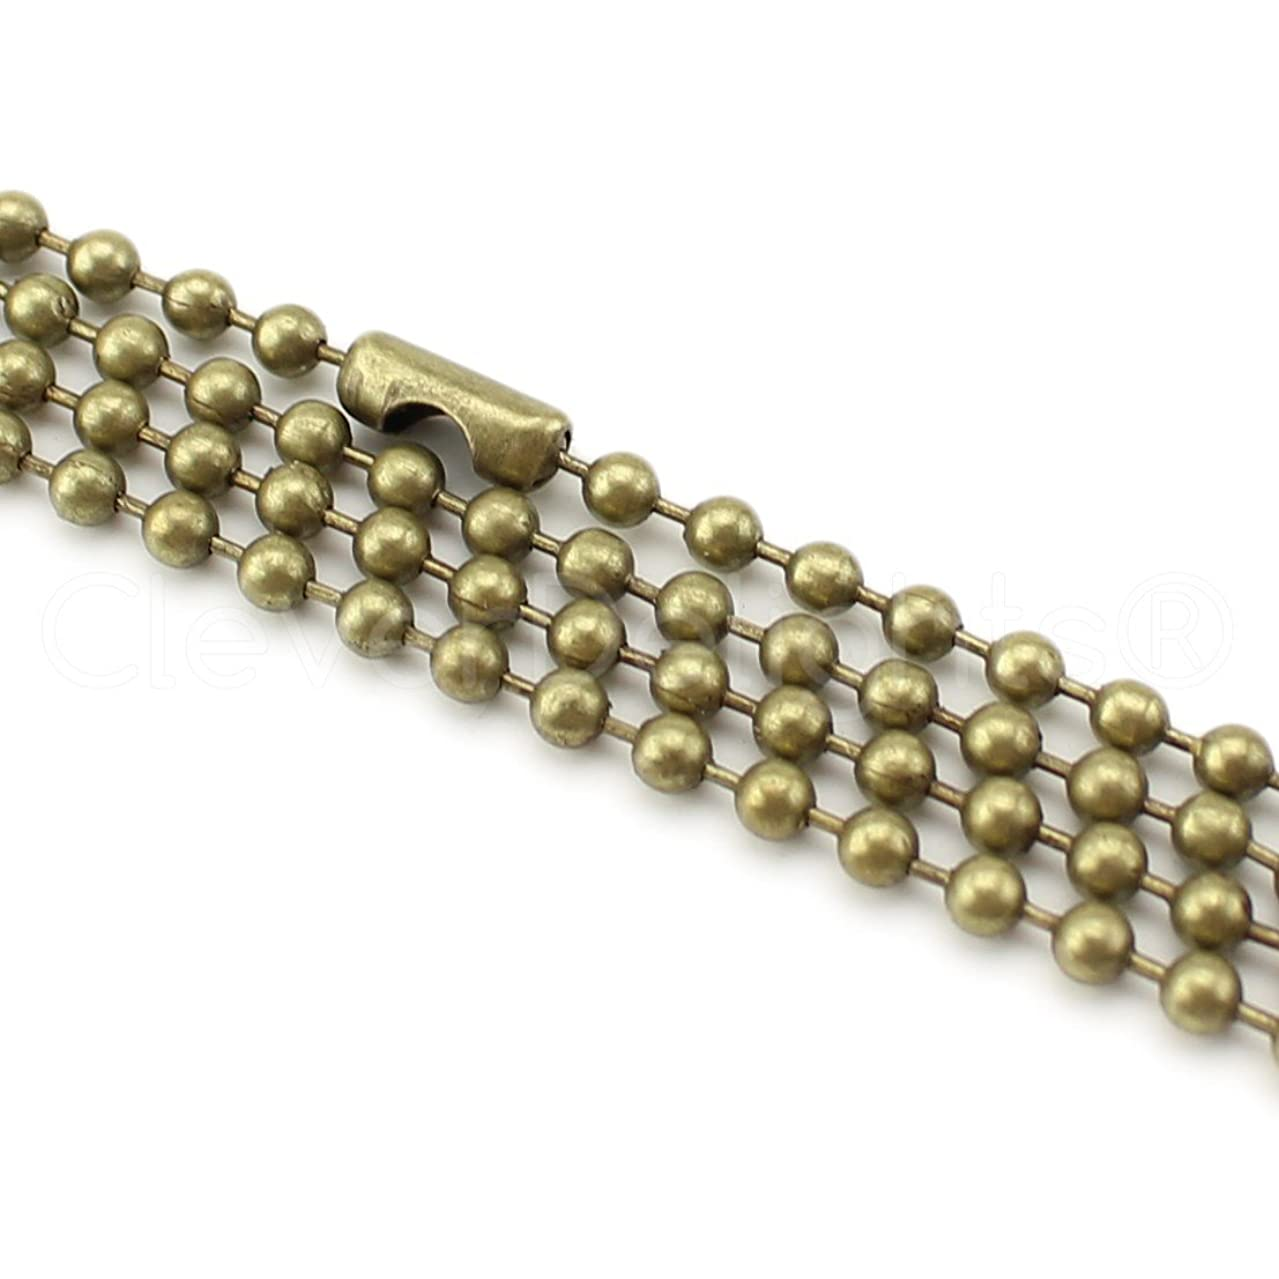 CleverDelights 10 Pack Ball Chain Necklaces - 24